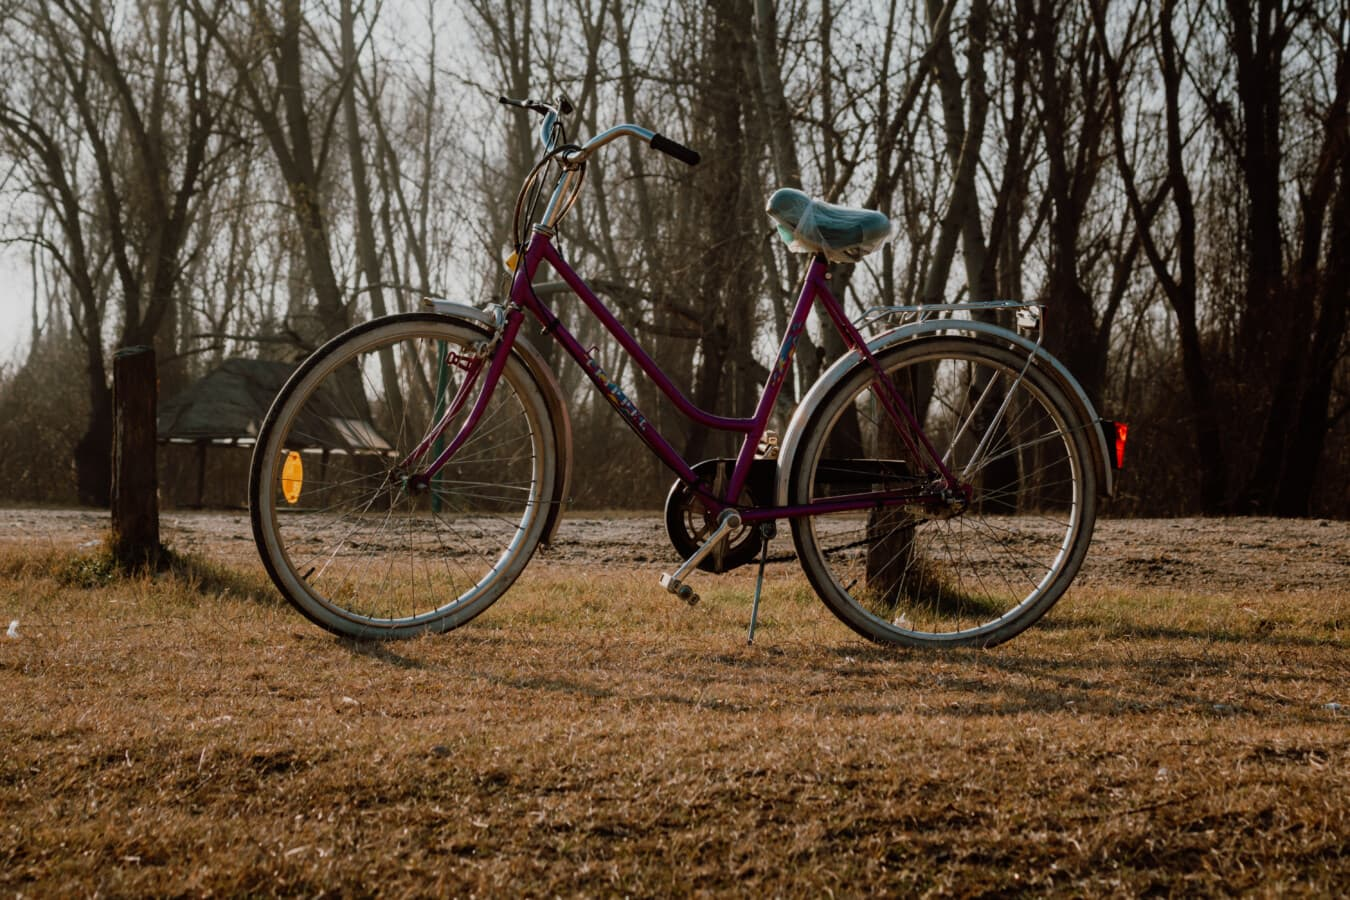 bicycle, classic, old style, cycling, seat, device, cycle, bike, wheel, wood